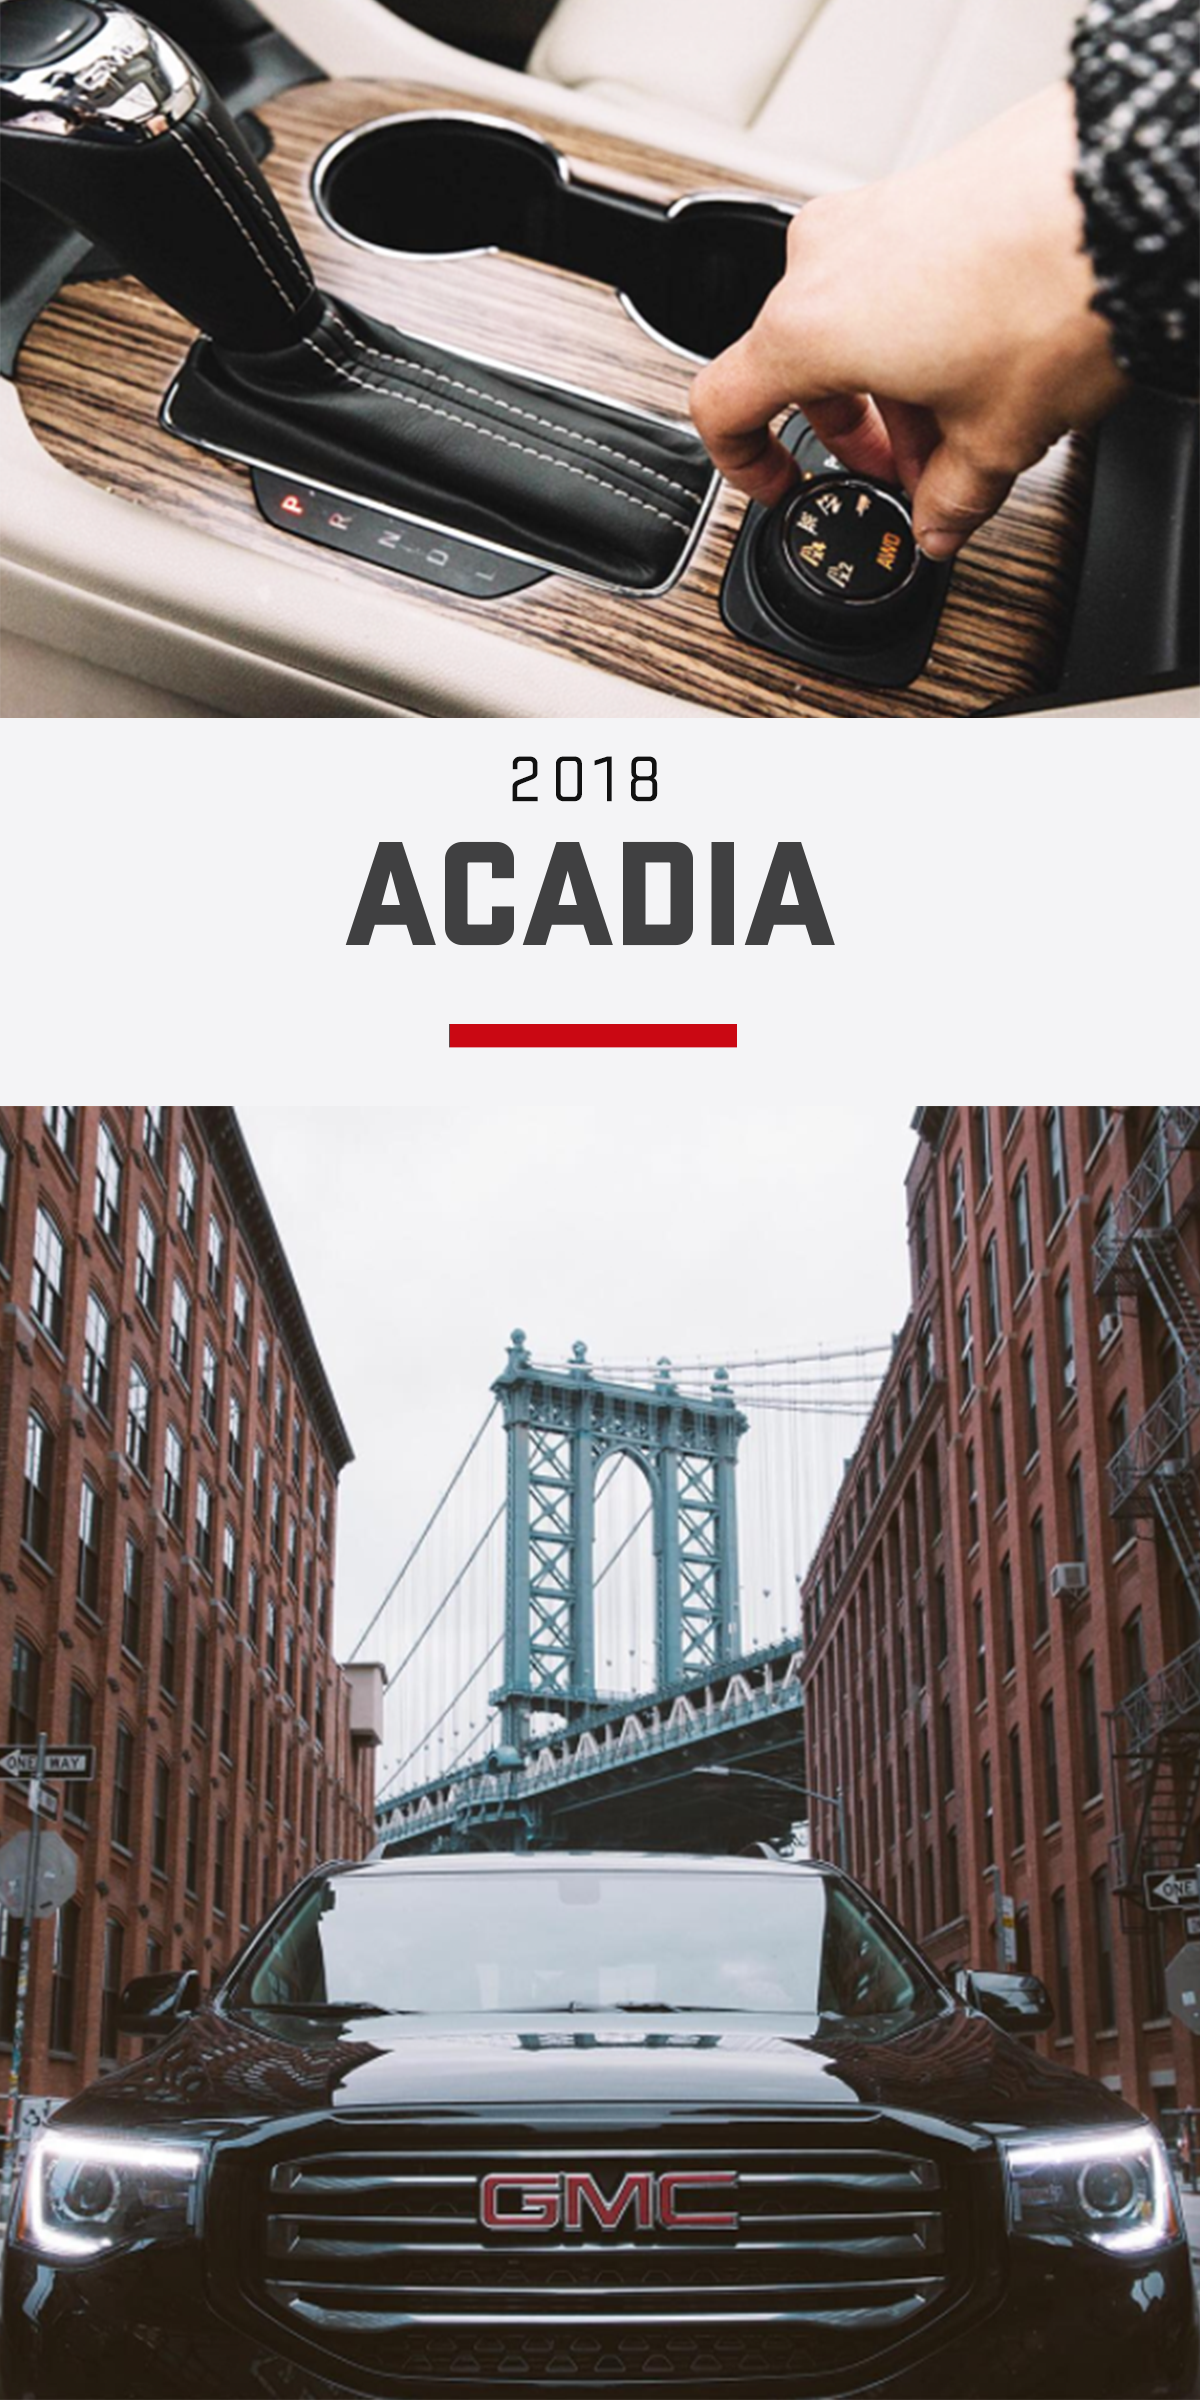 The Acadia Mid Size Suv Meets Your Everyday Needs With Premium